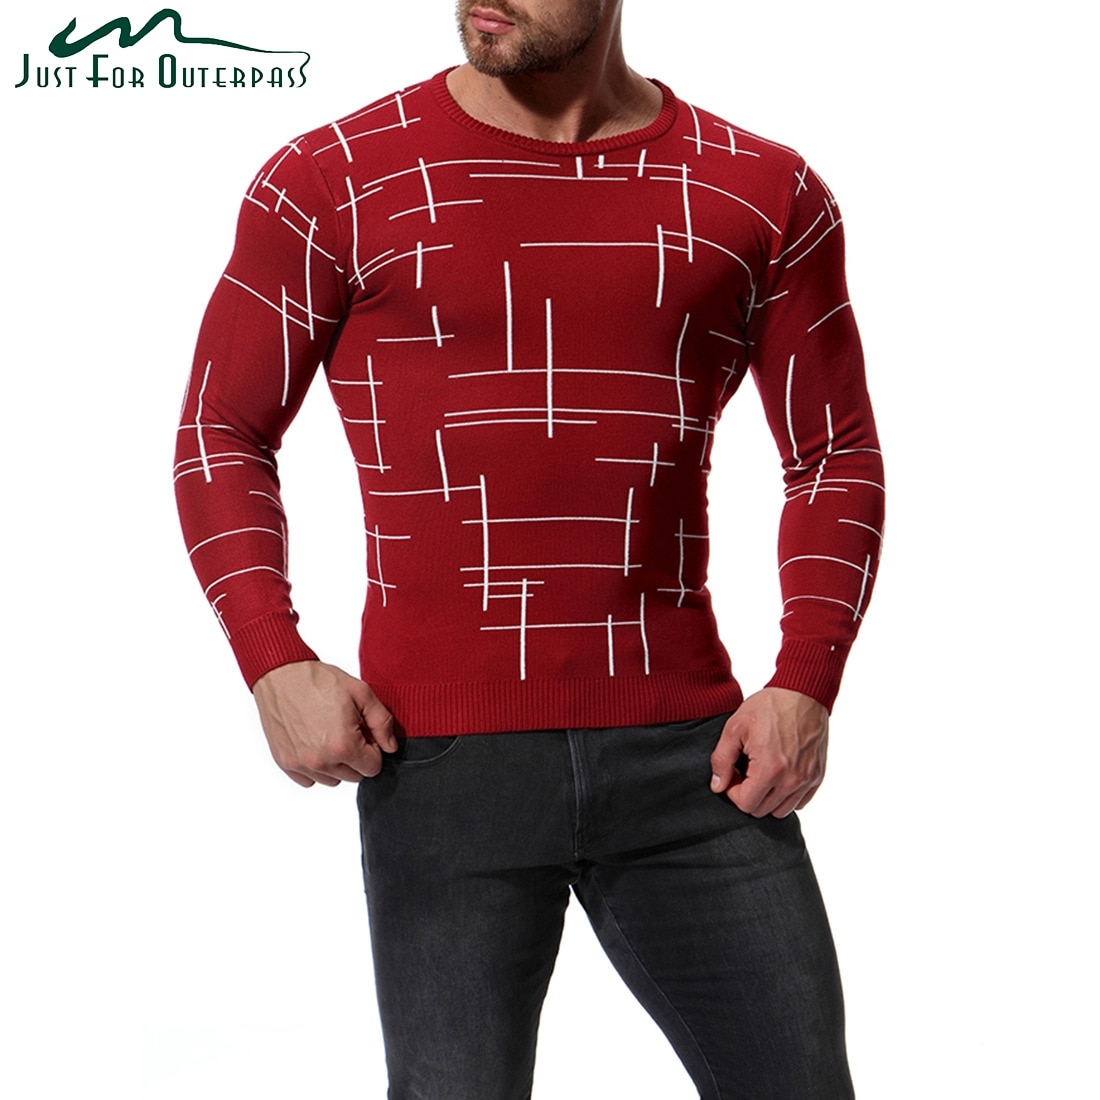 2018 New Men's Autumn Winter Pullovers Sweater O-Neck Long Sleeve Knitted Undershirt Male Fashion Slim Warm Coat High Quality